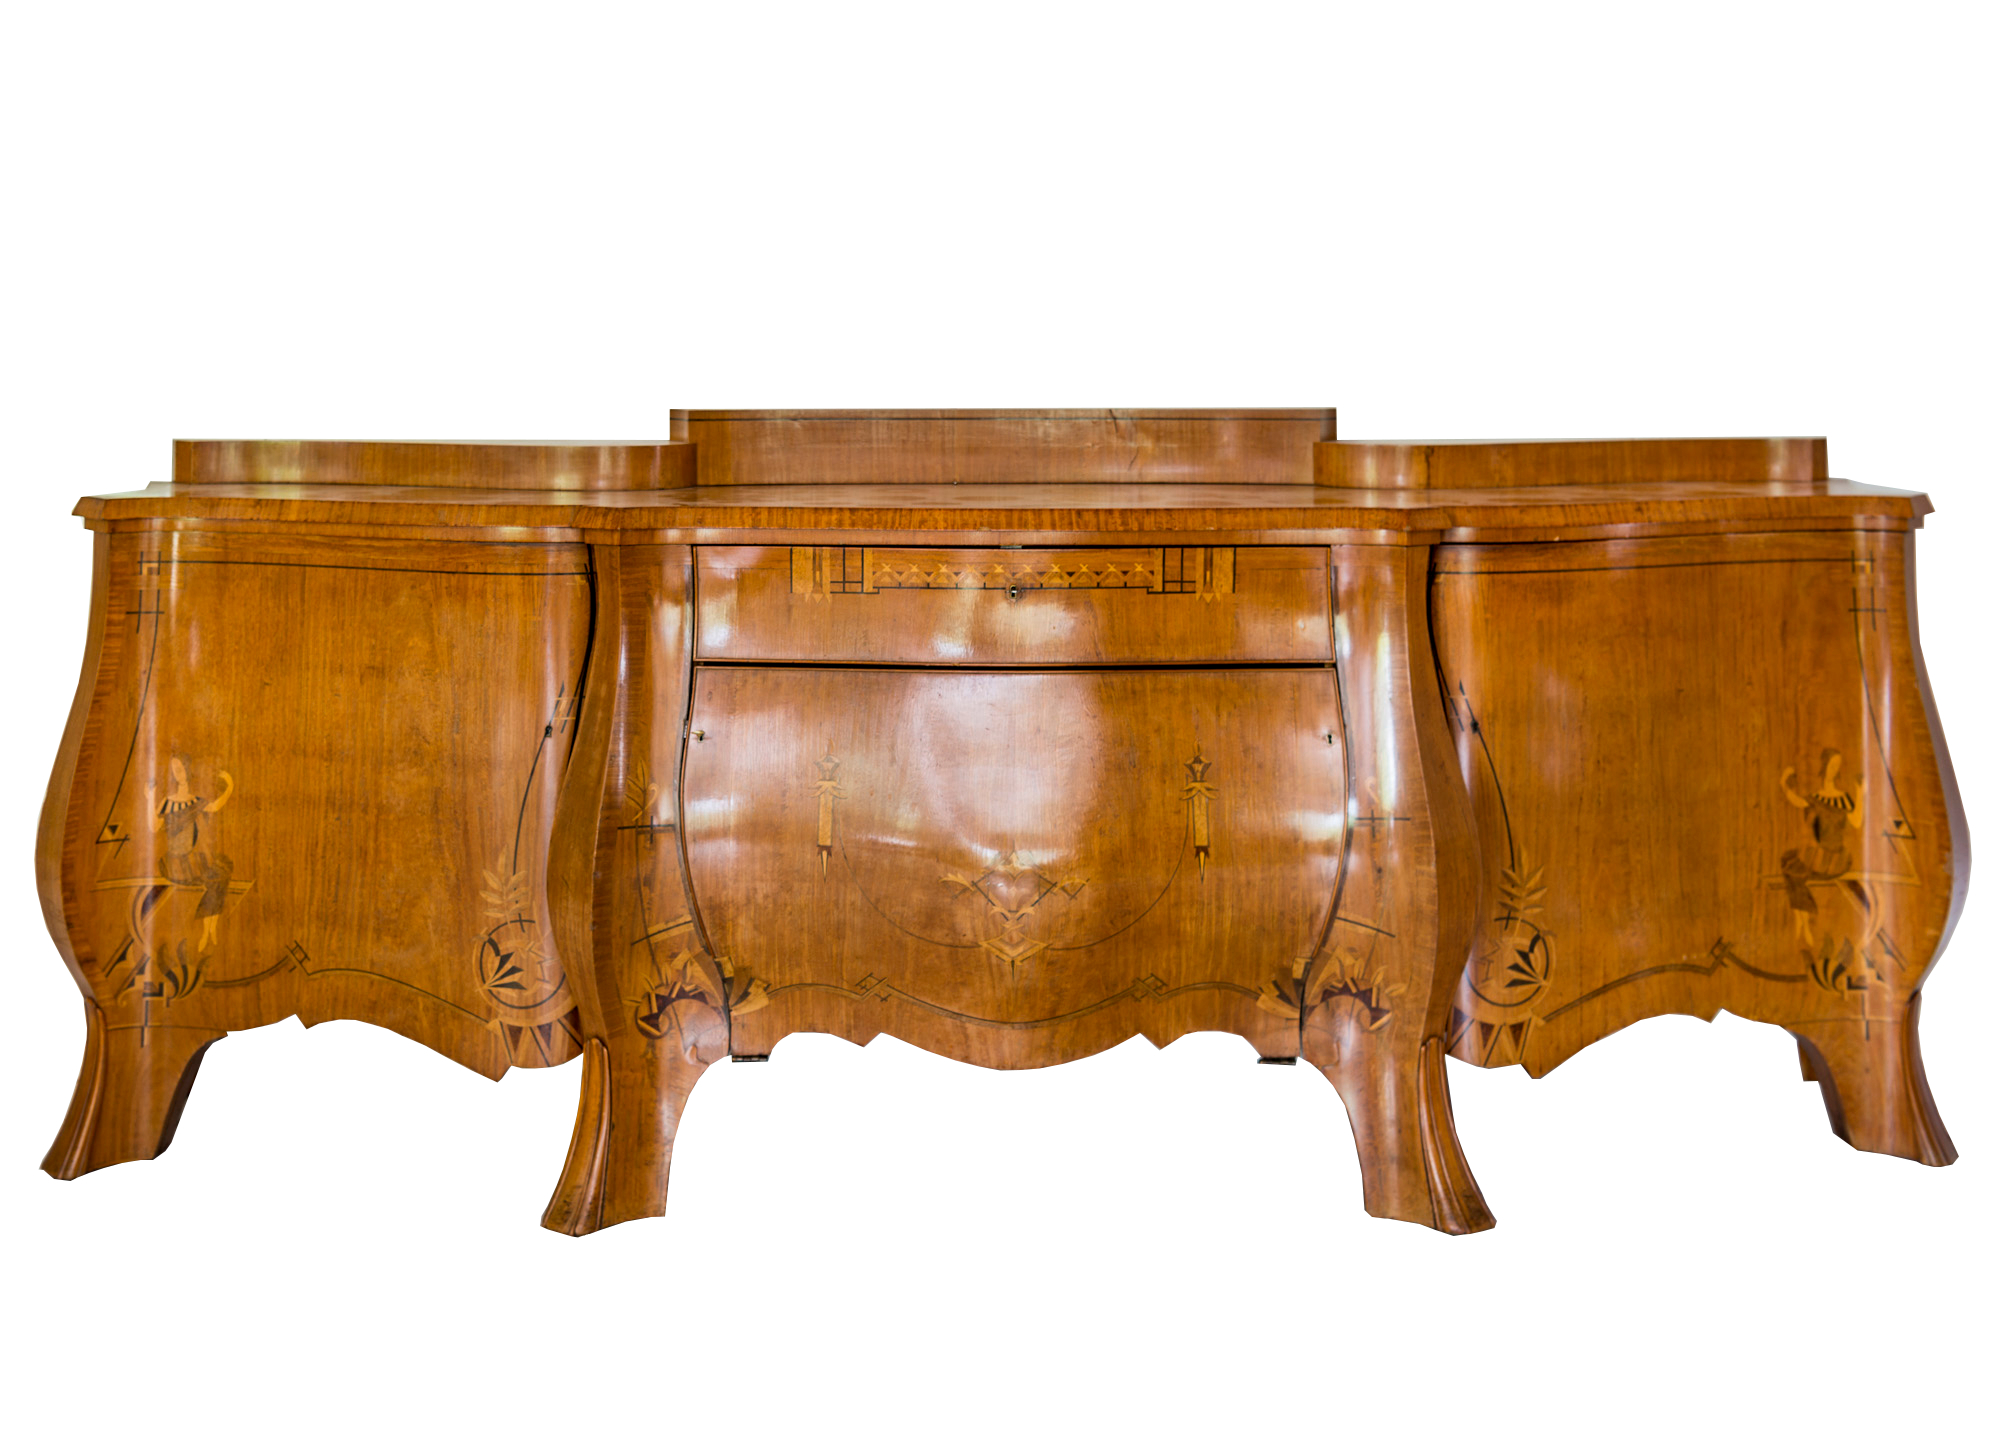 Rare 1920s Curved Art Deco Sideboard with Floral Motifs